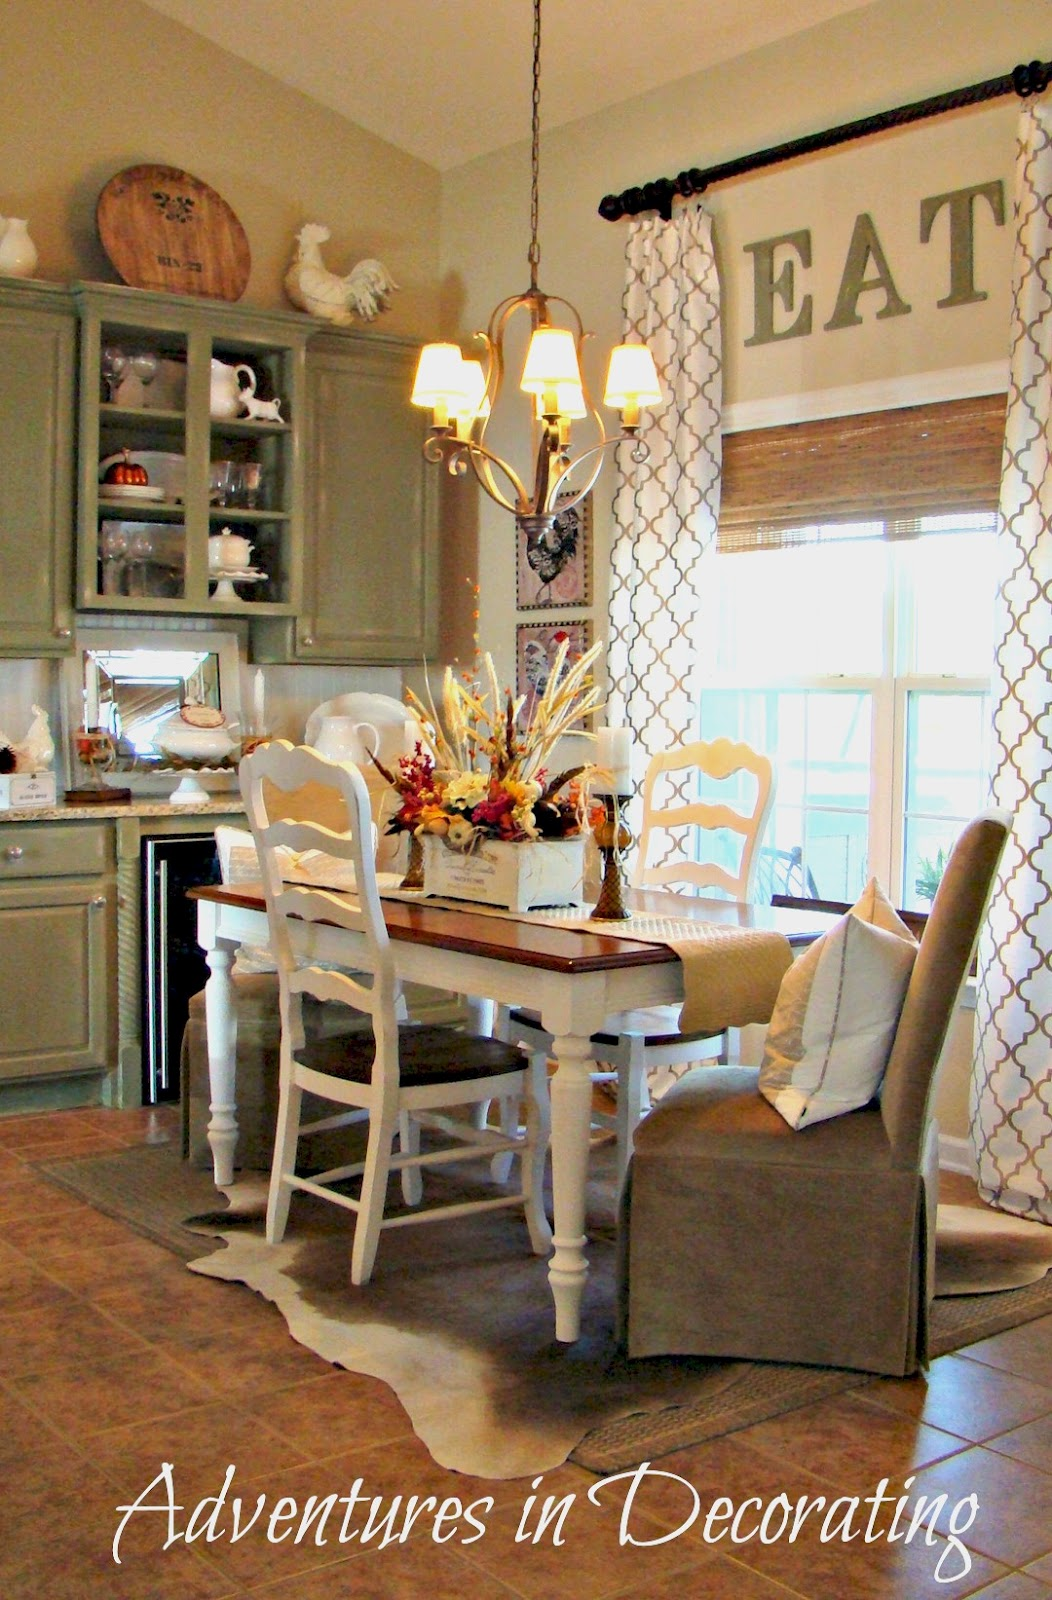 Adventures In Decorating Our Fall Kitchen: Adventures In Decorating: Breakfast Area Gets A New Look